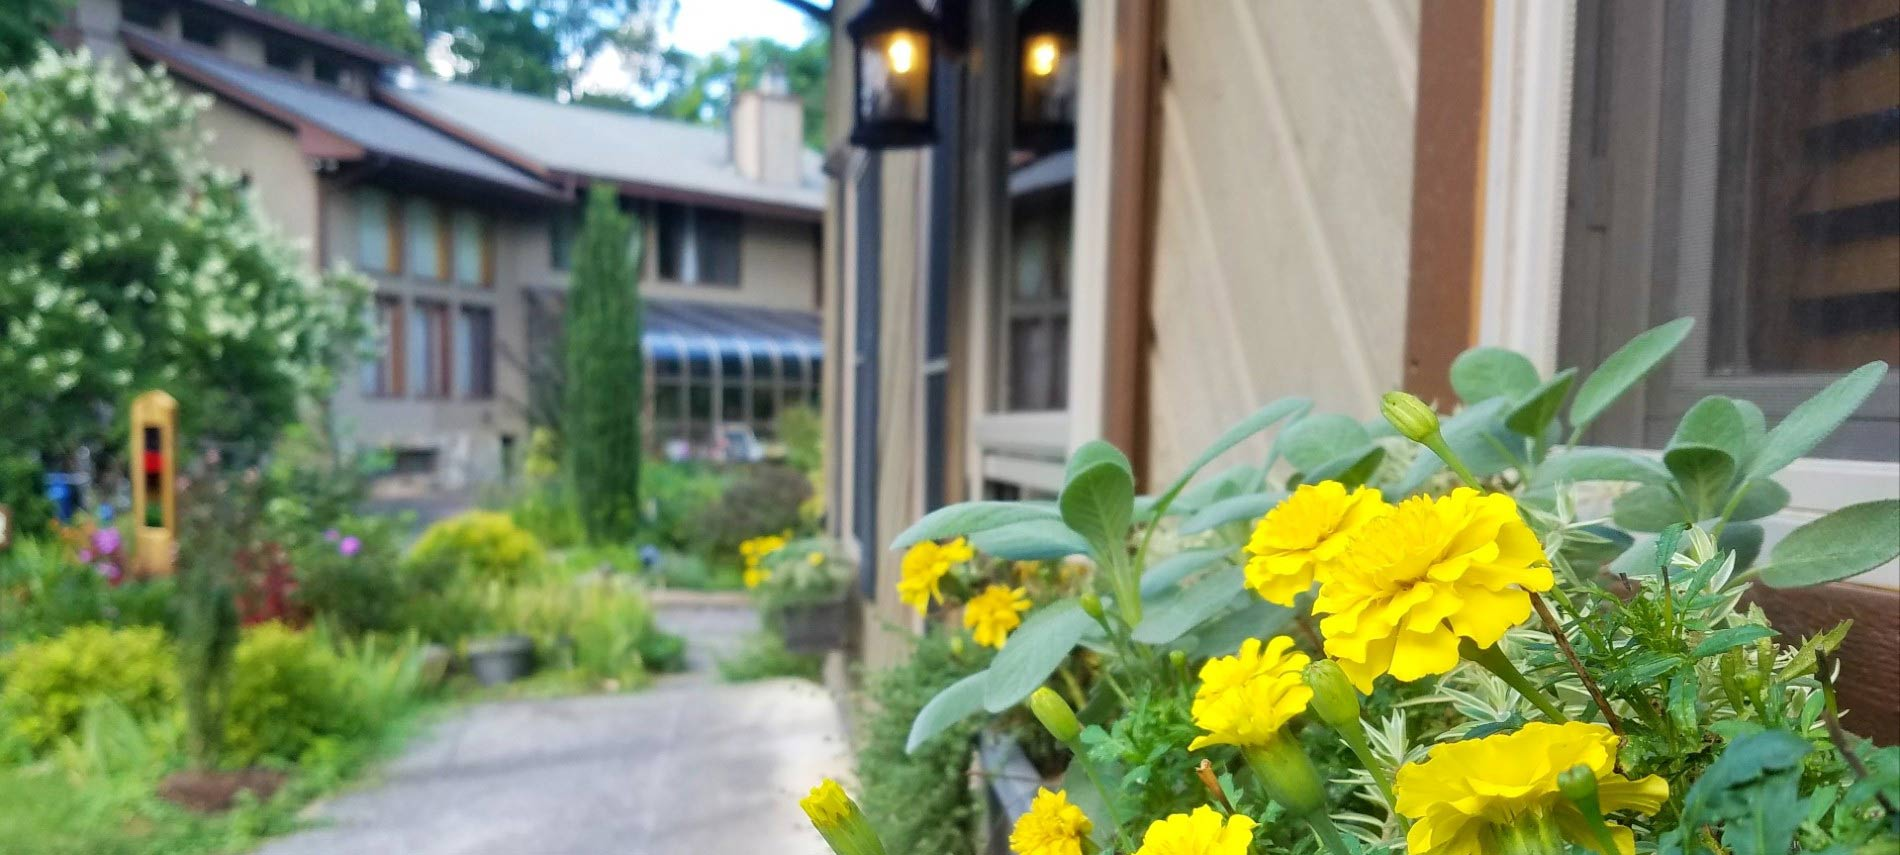 Close view of a windowbox with bright yellow flowers in focus with main inn building in background with landscaping slightly off focus in favor of the flowers.